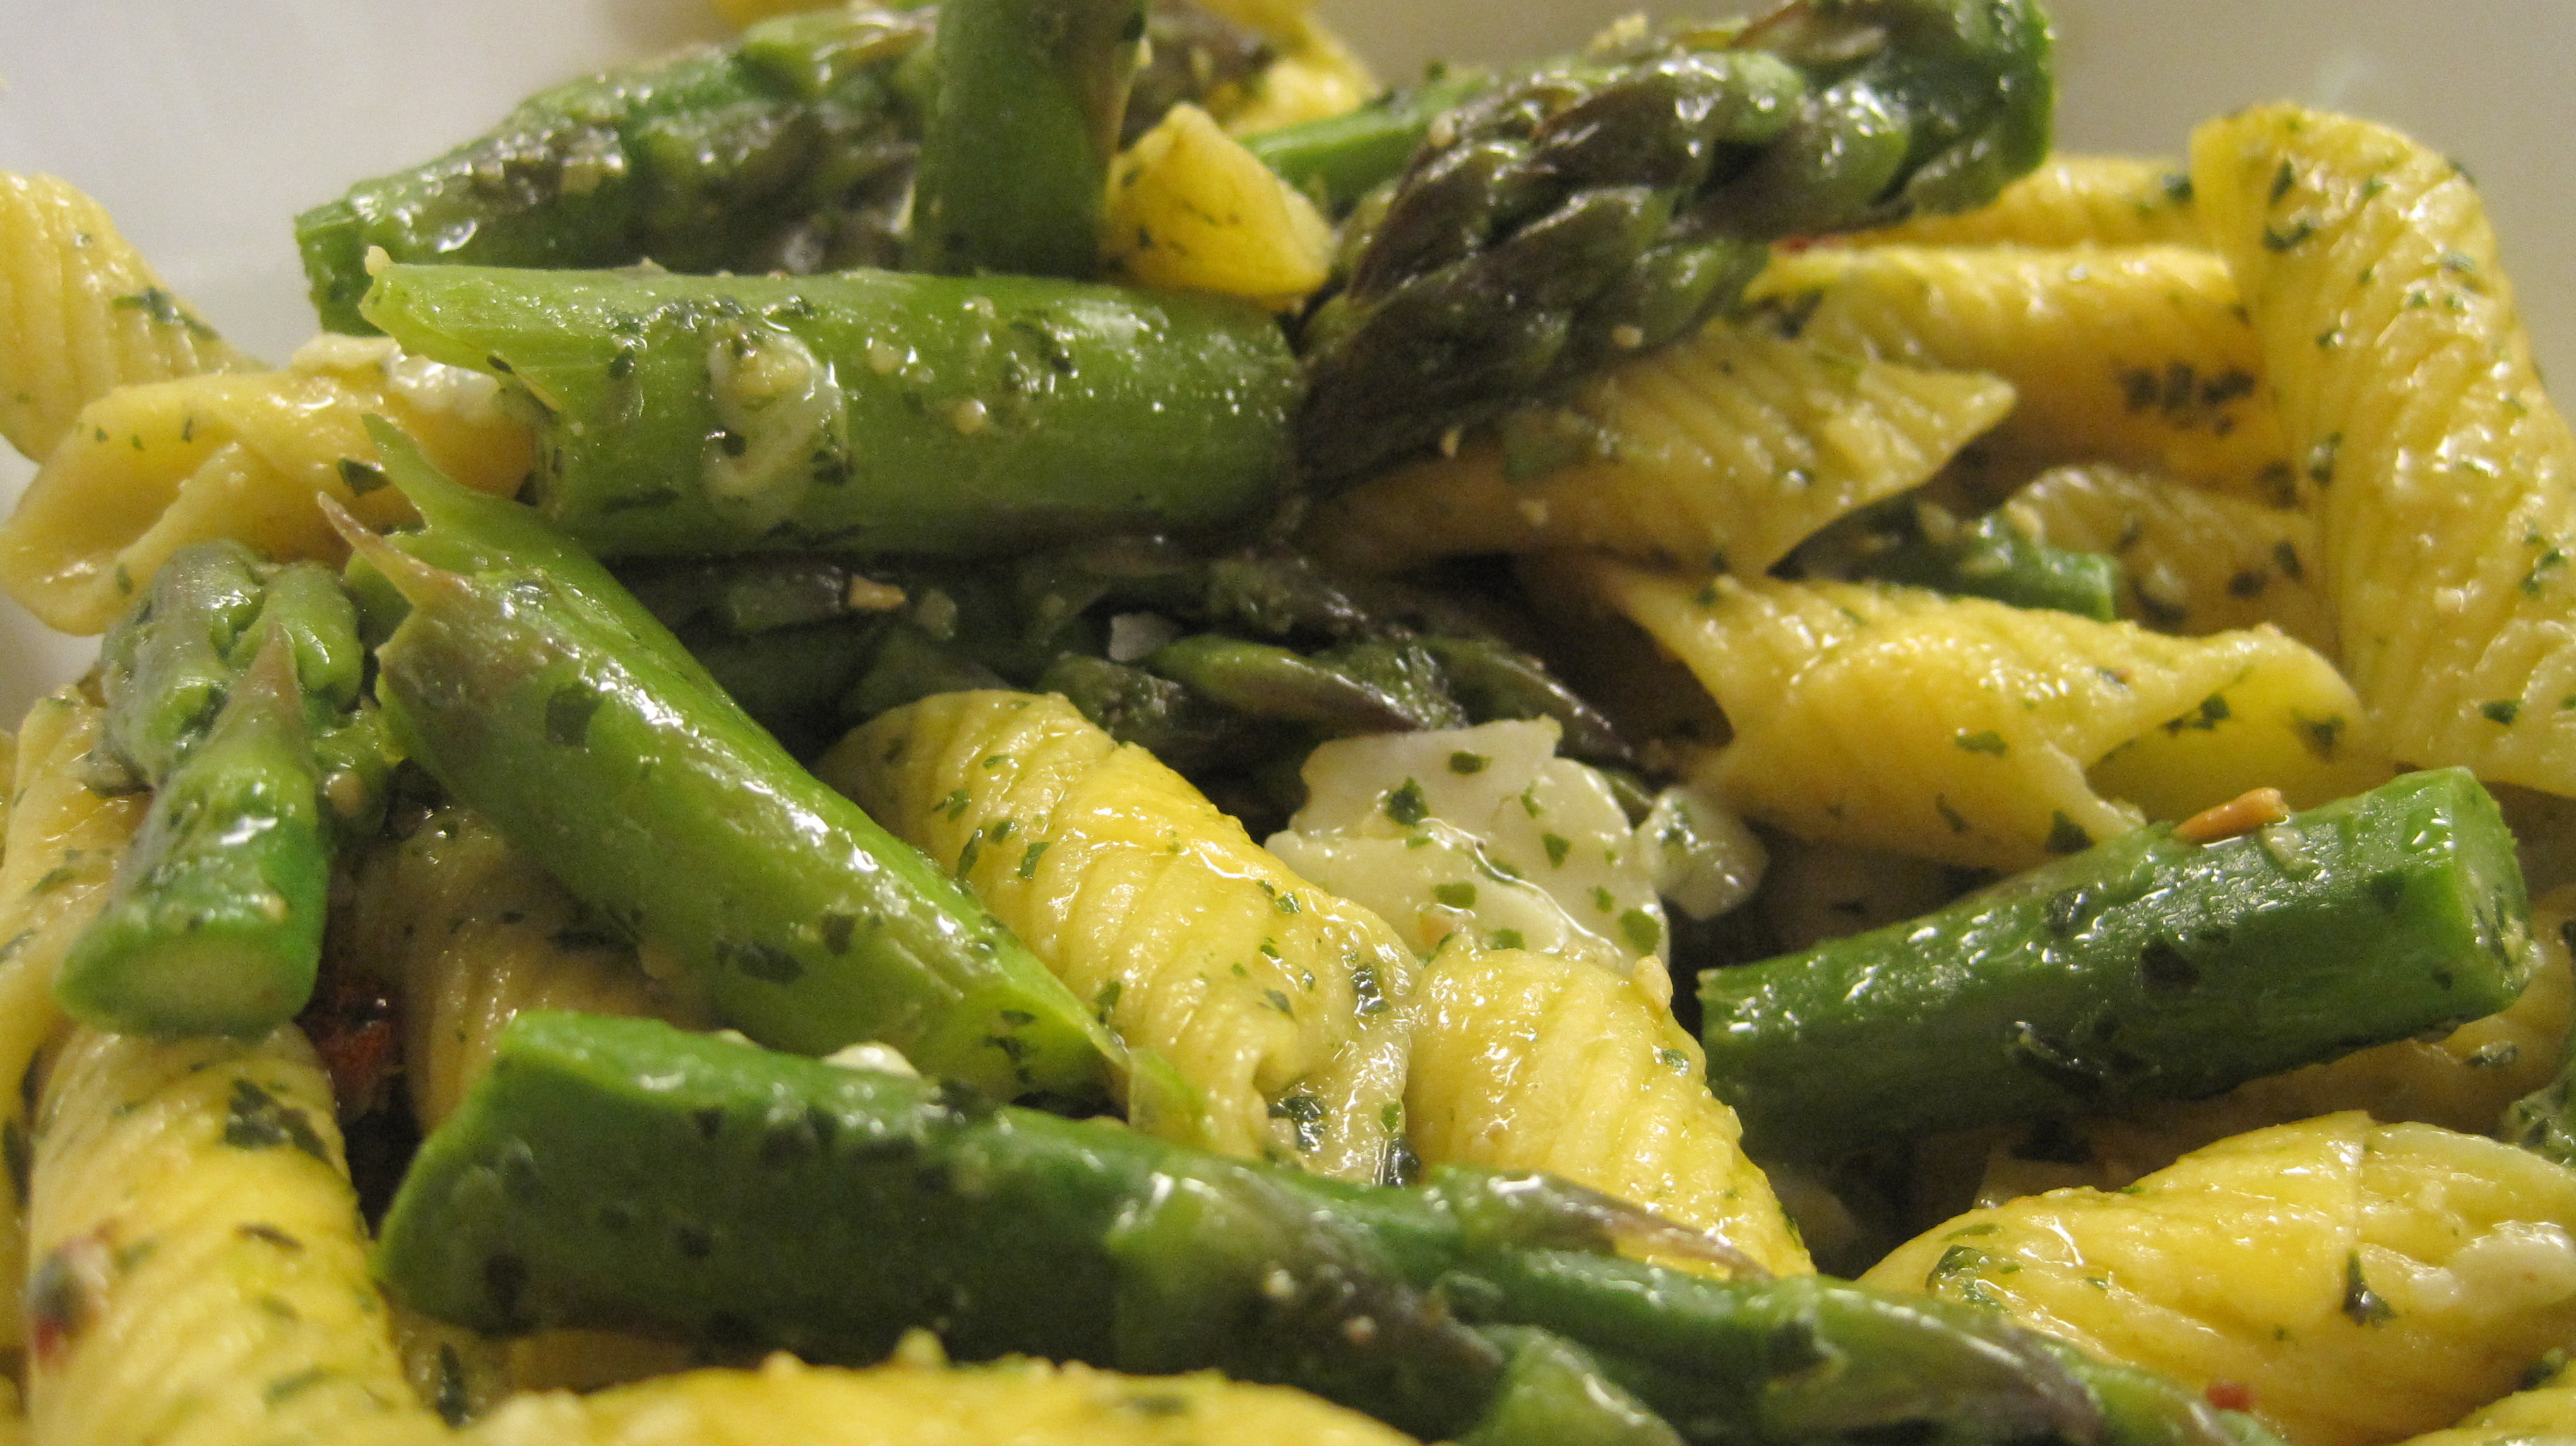 Summer Pasta with Asparagus & Pesto | No Whisk, No Reward